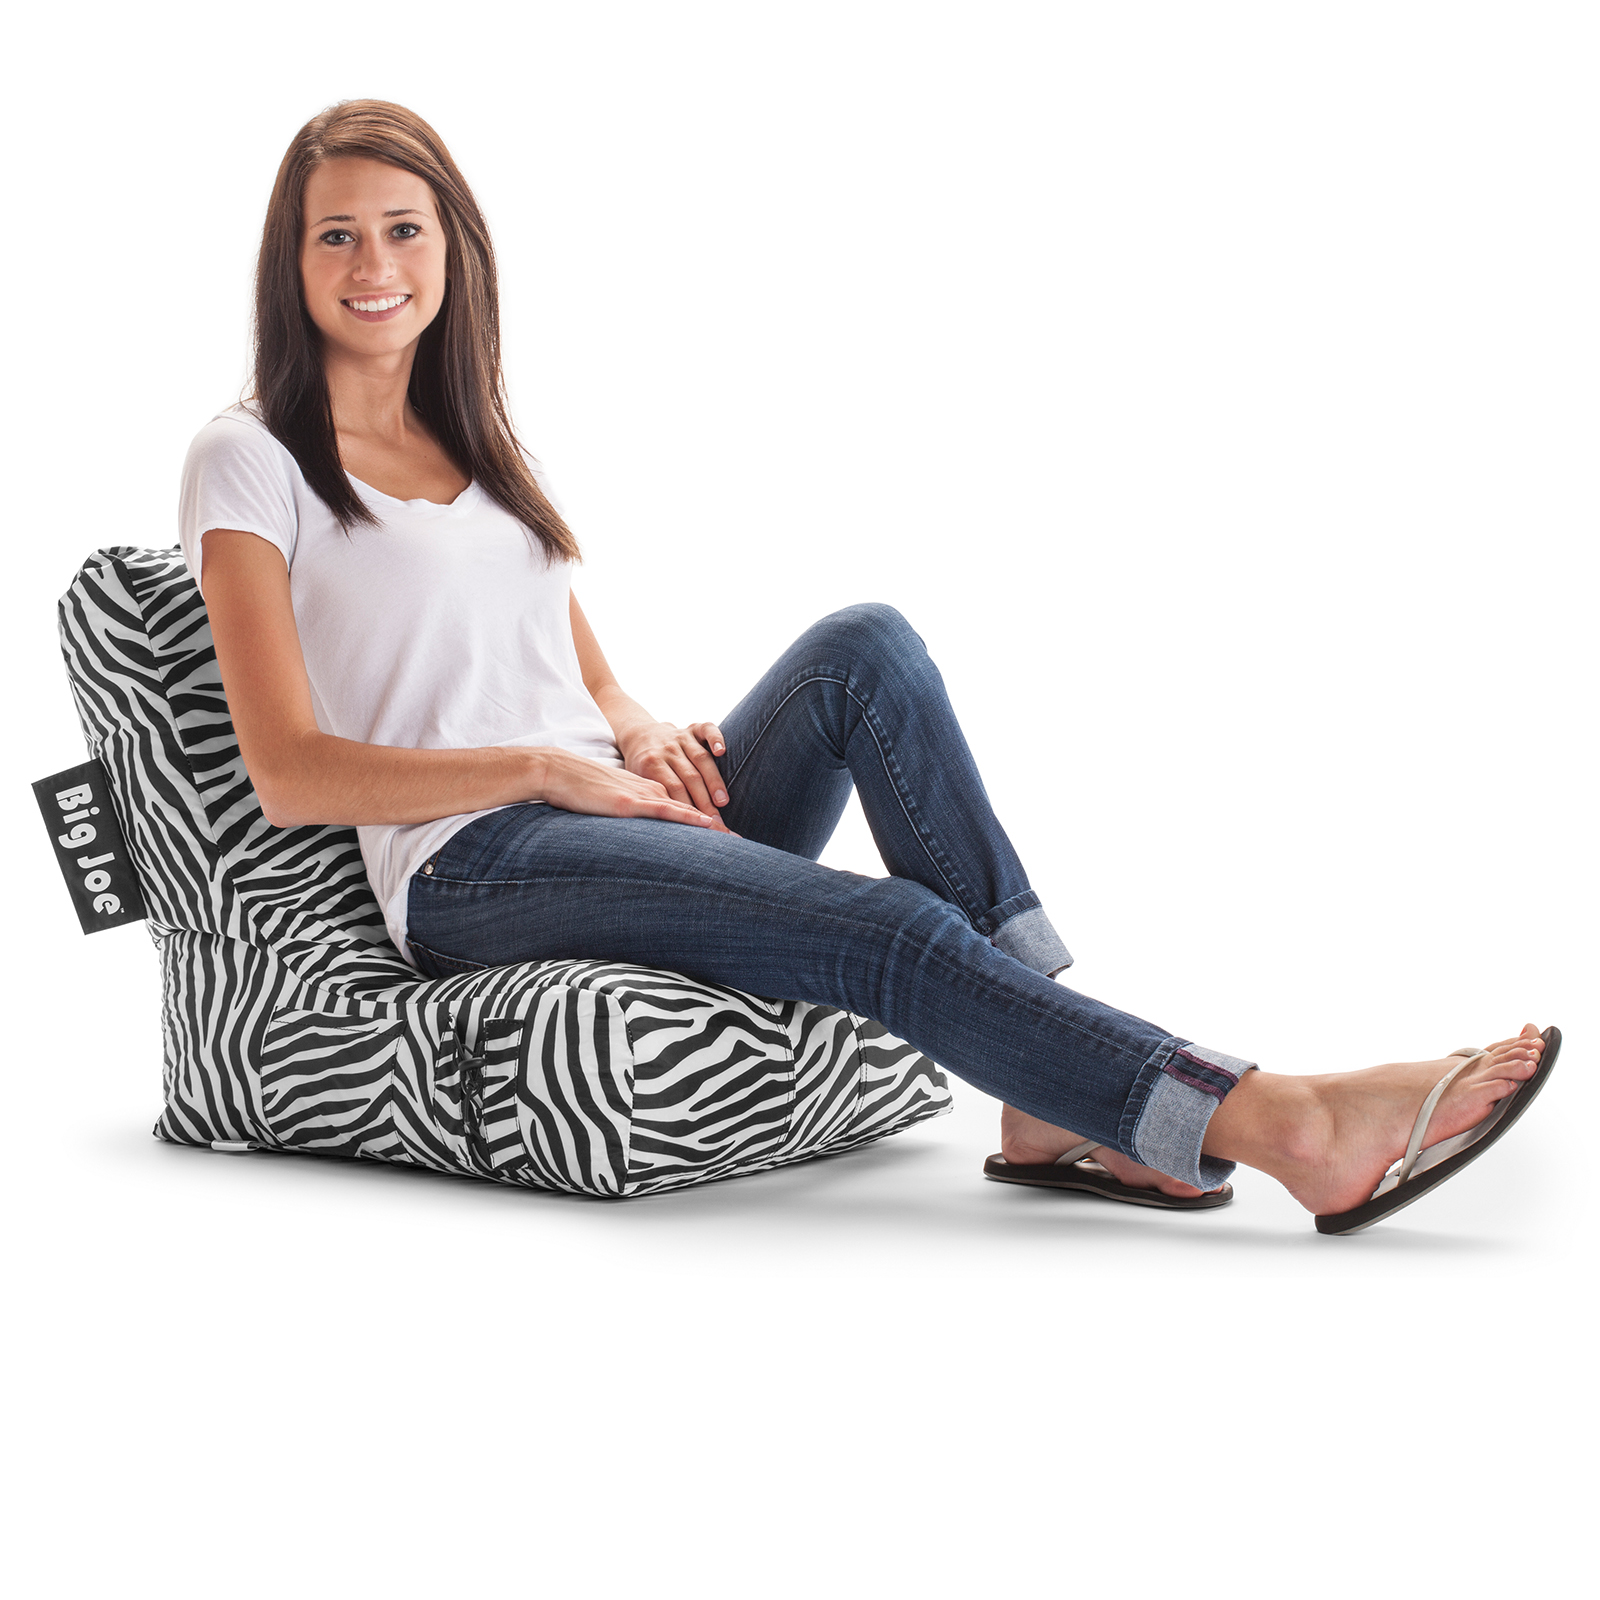 cheetah print bean bag chair counter height chairs ikea zebra beanbag